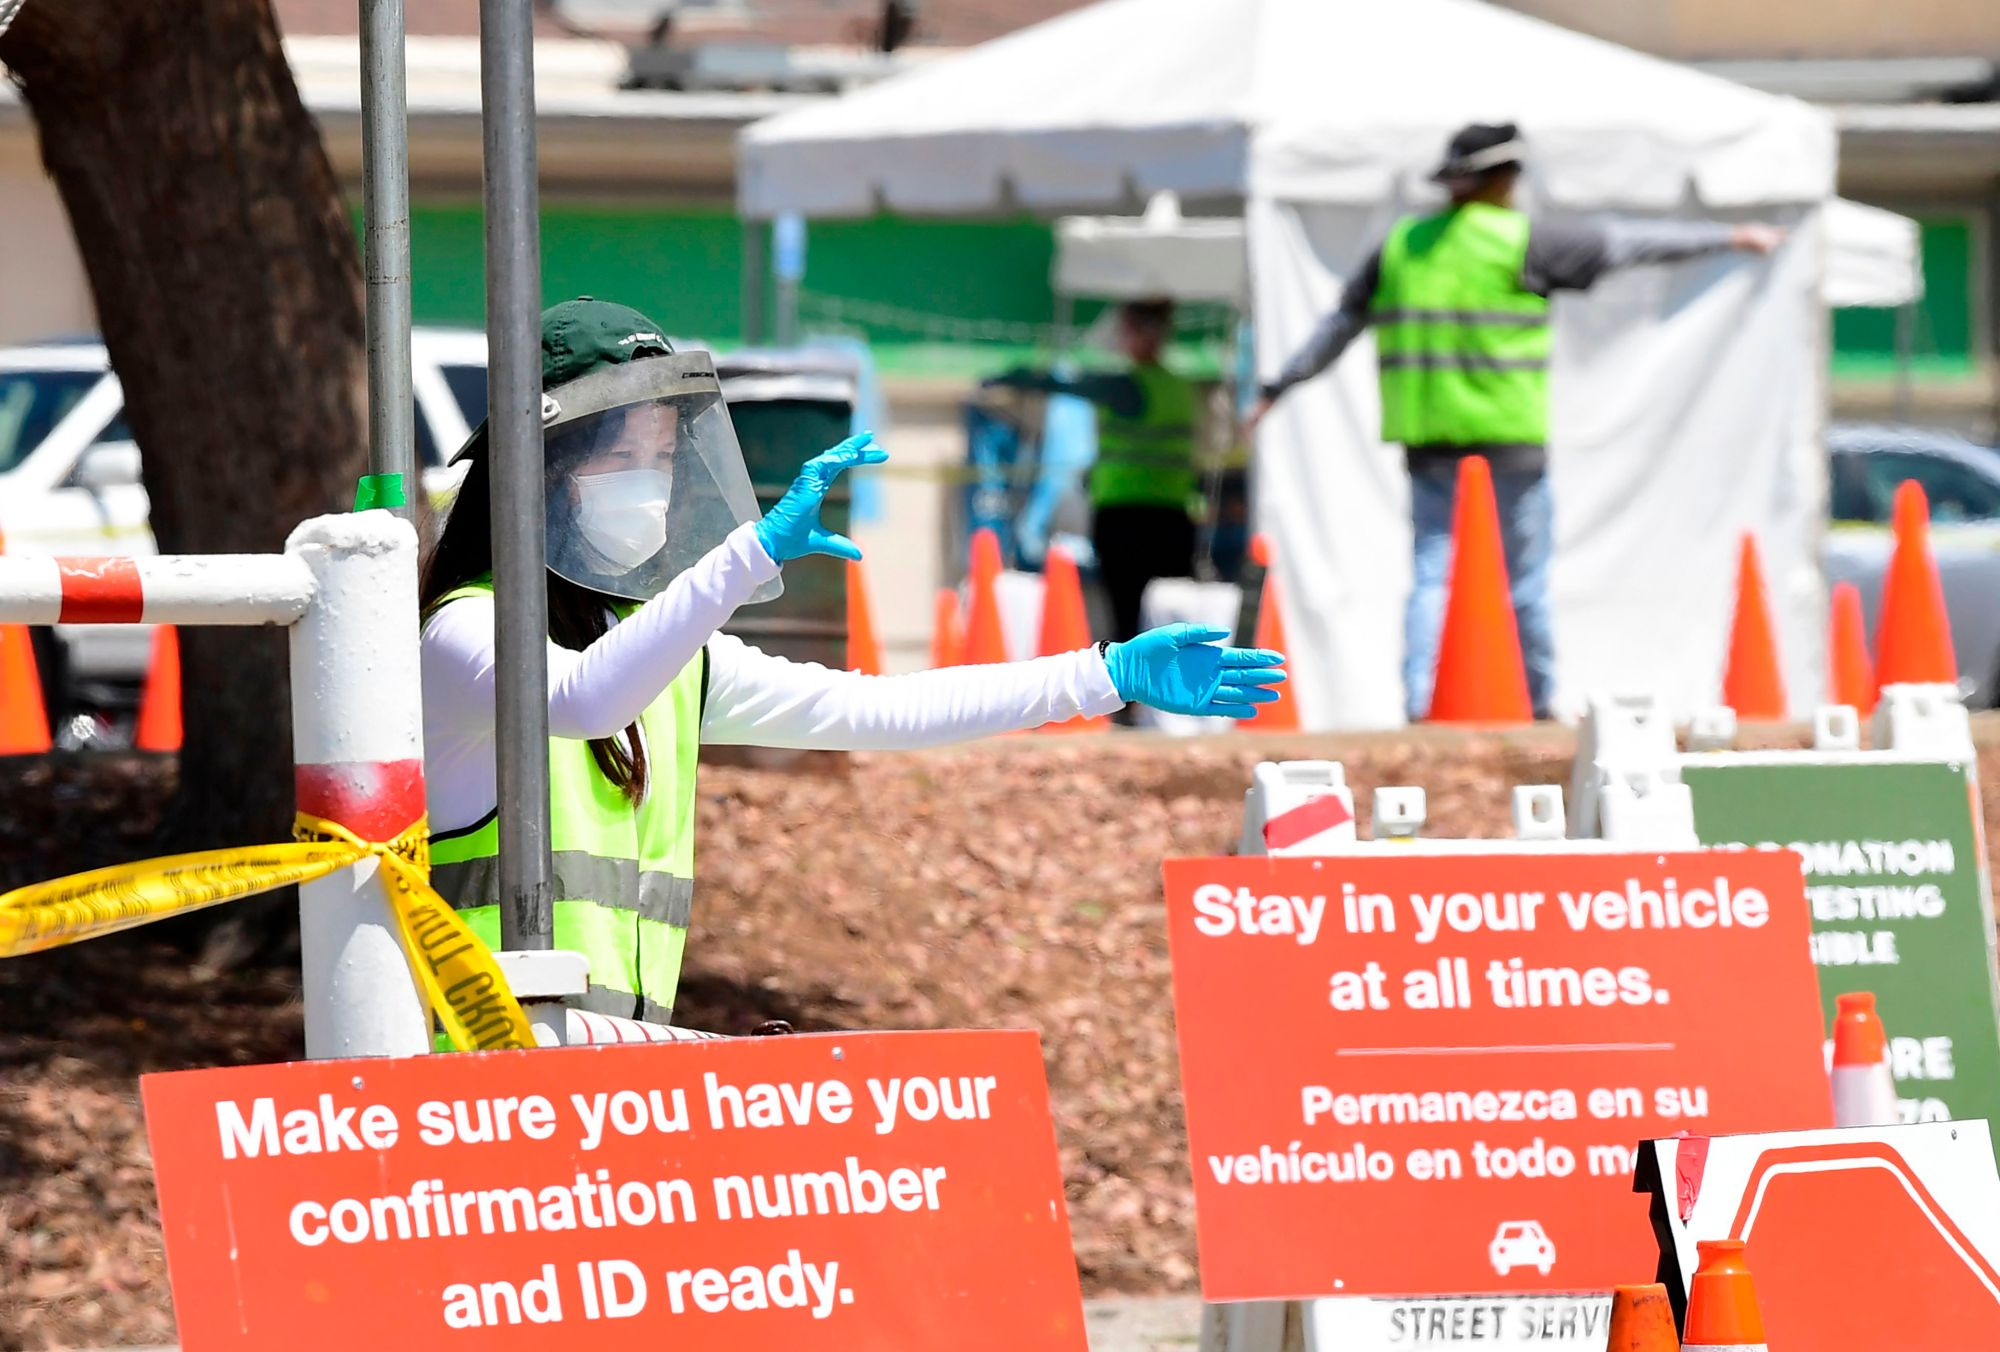 COVID-19 test site volunteers wearing personal protective equipment assist drivers arriving at a coronavirus test site in Los Angeles on July 10, 2020. (Frederic J. Brown / AFP / Getty Images)